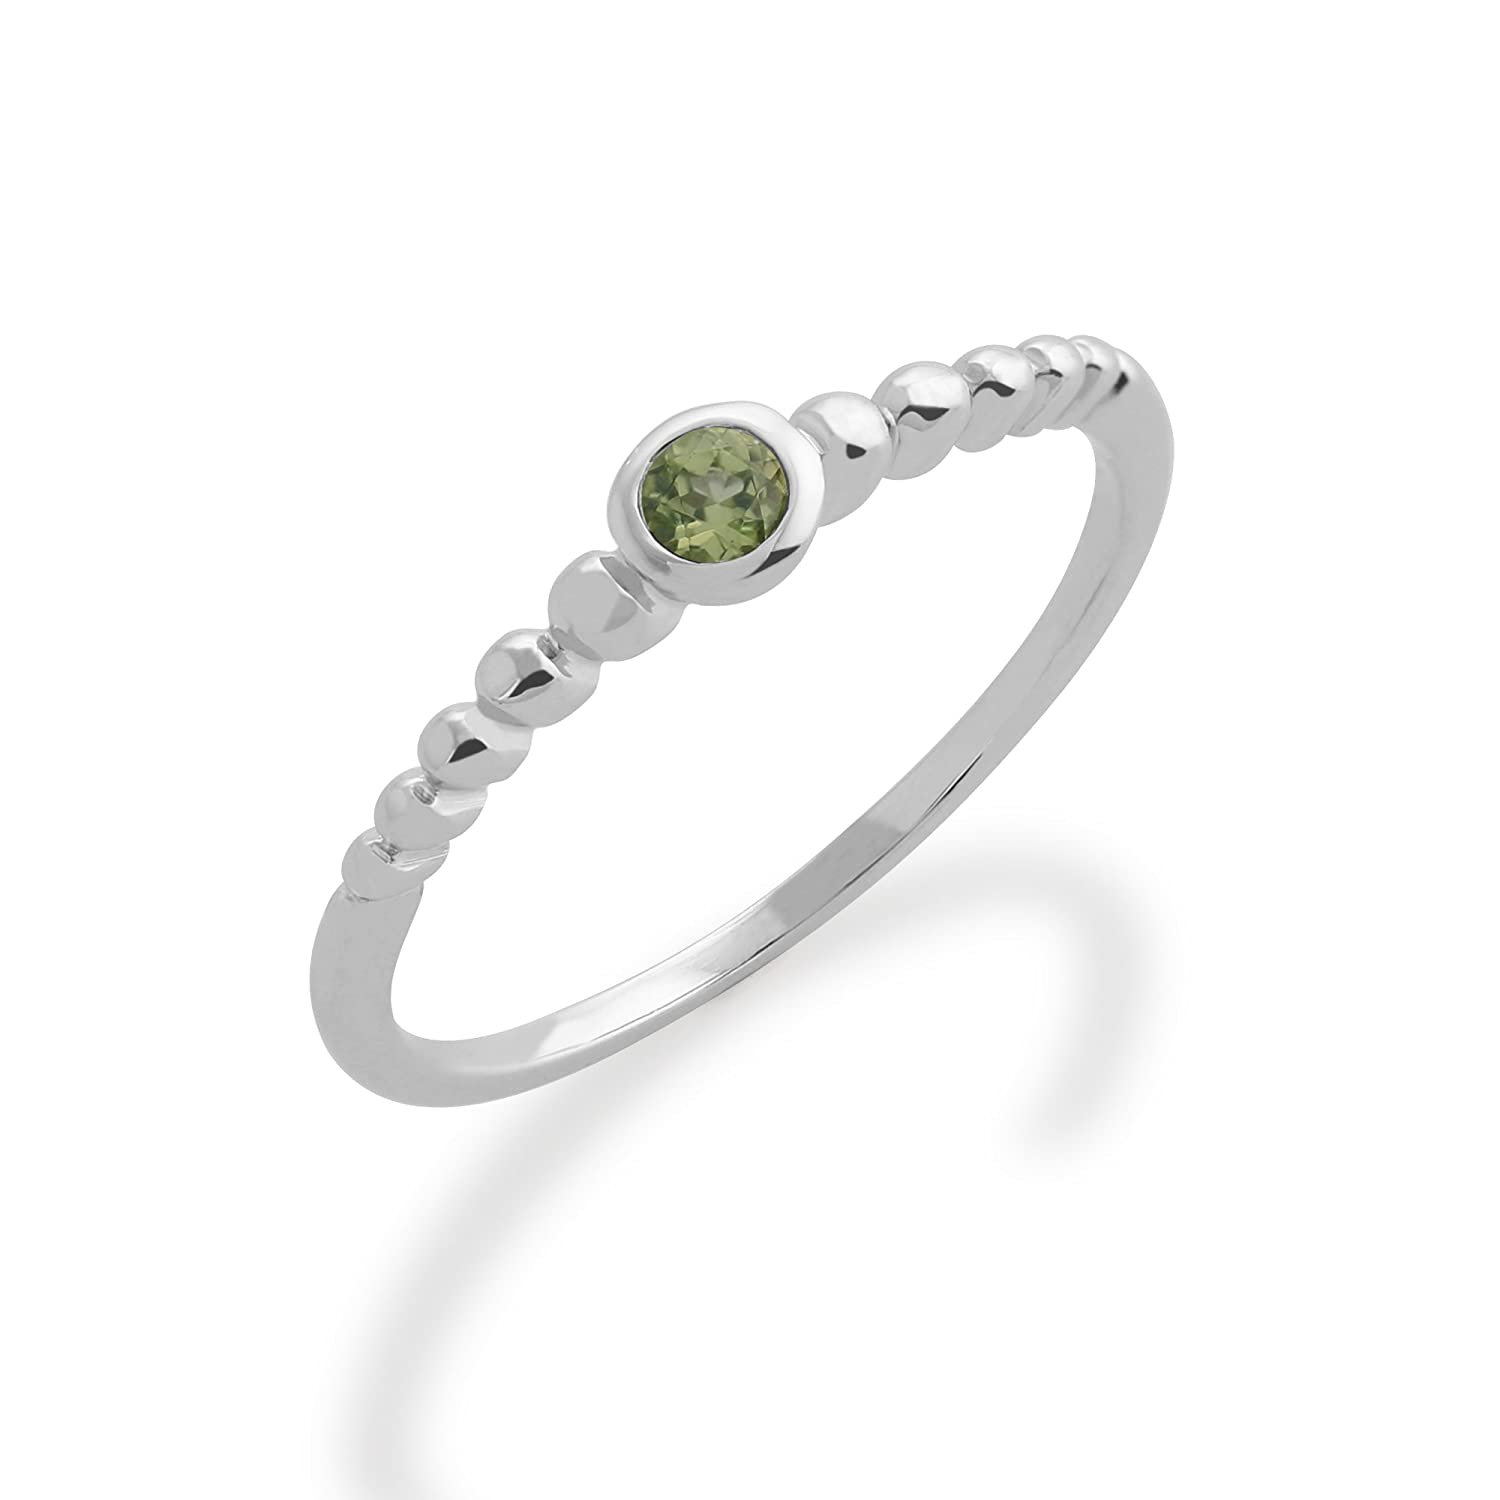 Gemondo Peridot Ring, 925 Sterling Silver 0.10ct Peridot Stackable Birthstone Ring